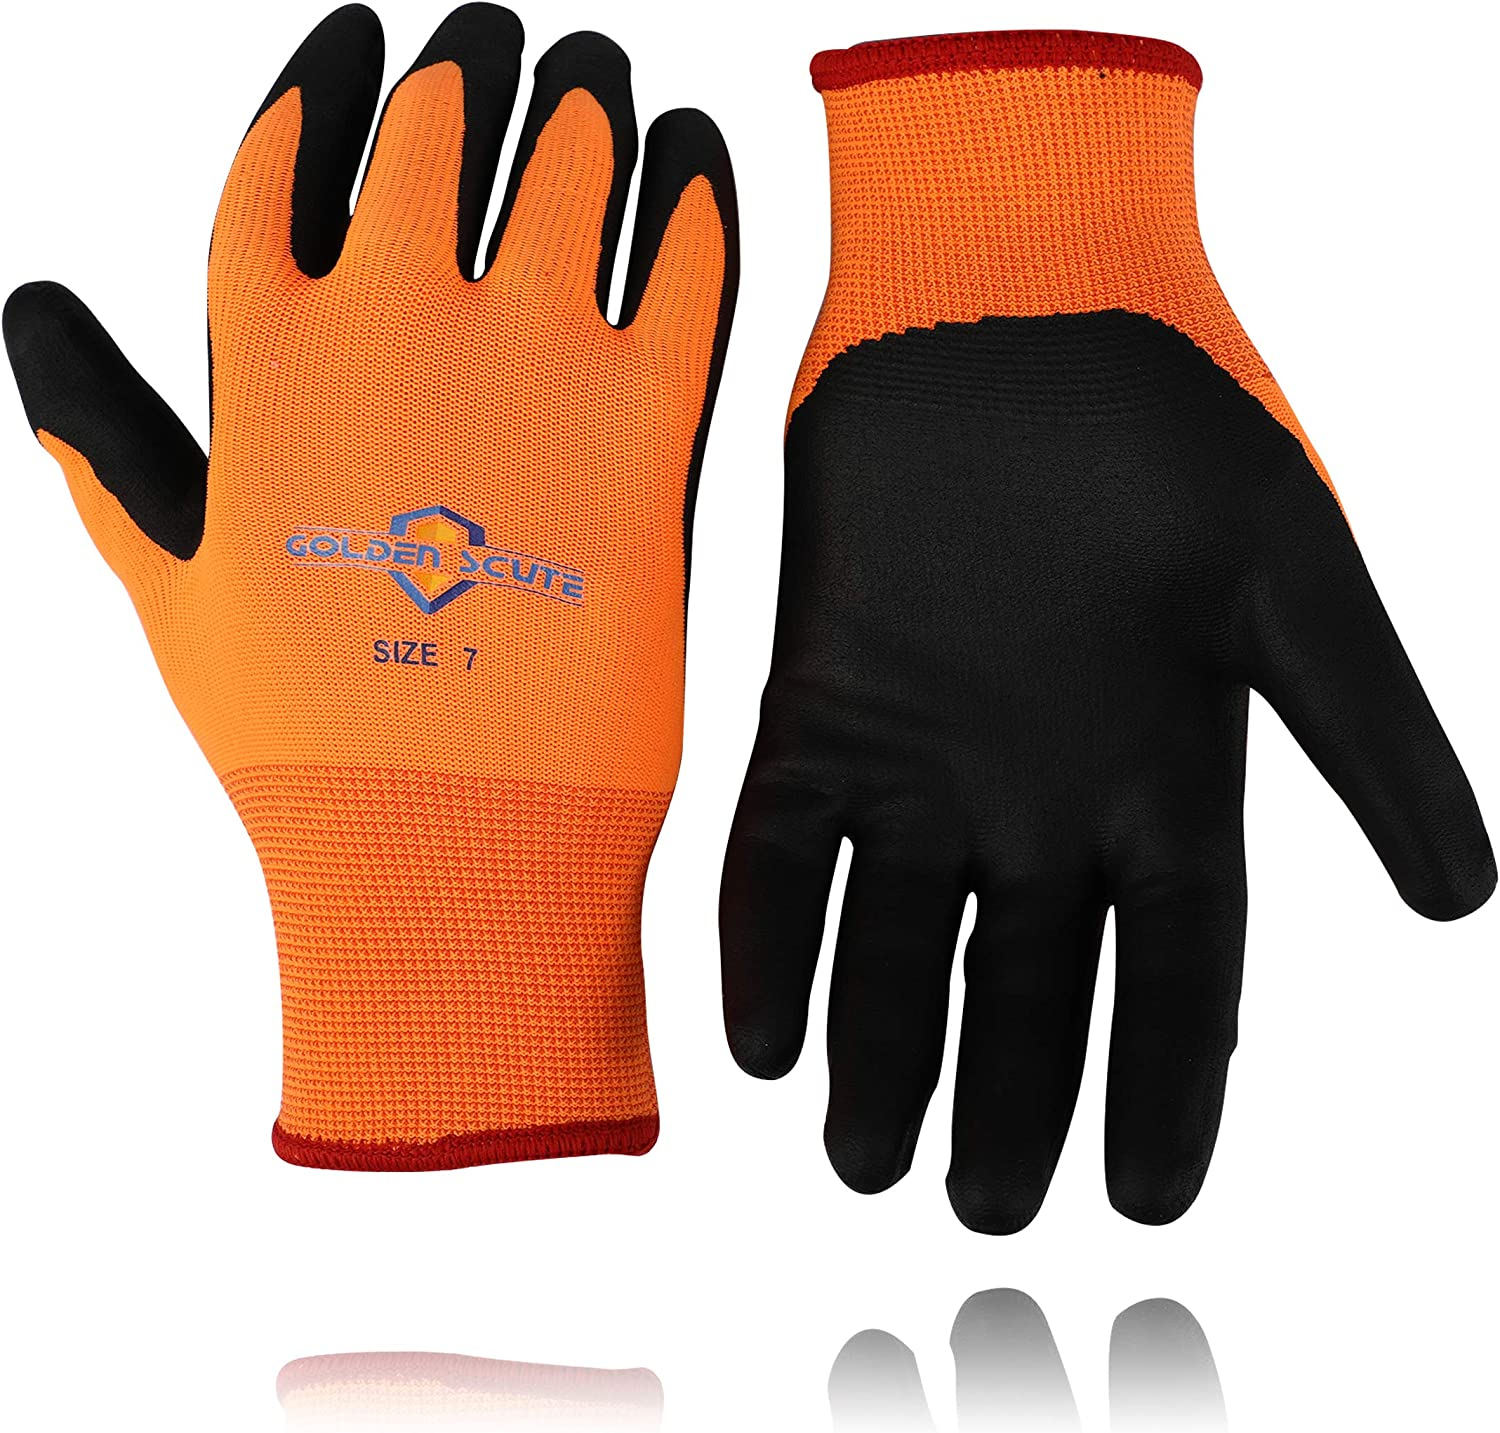 Golden Scute Freezer Winter Work Gloves,Smart Touch,Fleece Lined with Tight Grip Palms -Cold Temperatures, 6 pairs (Size 9, Large)